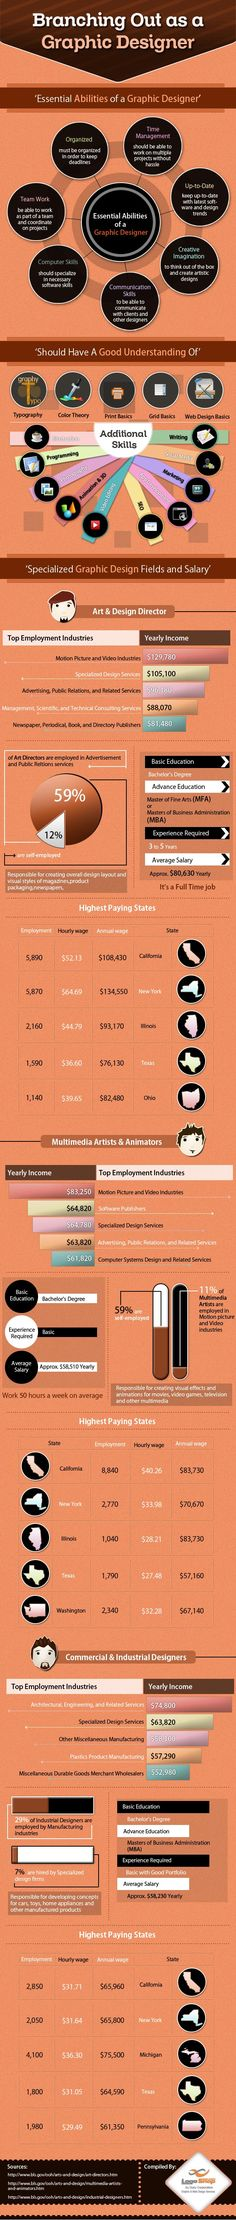 If you're wanting to be a graphic designer here's a nice guide! #design #job